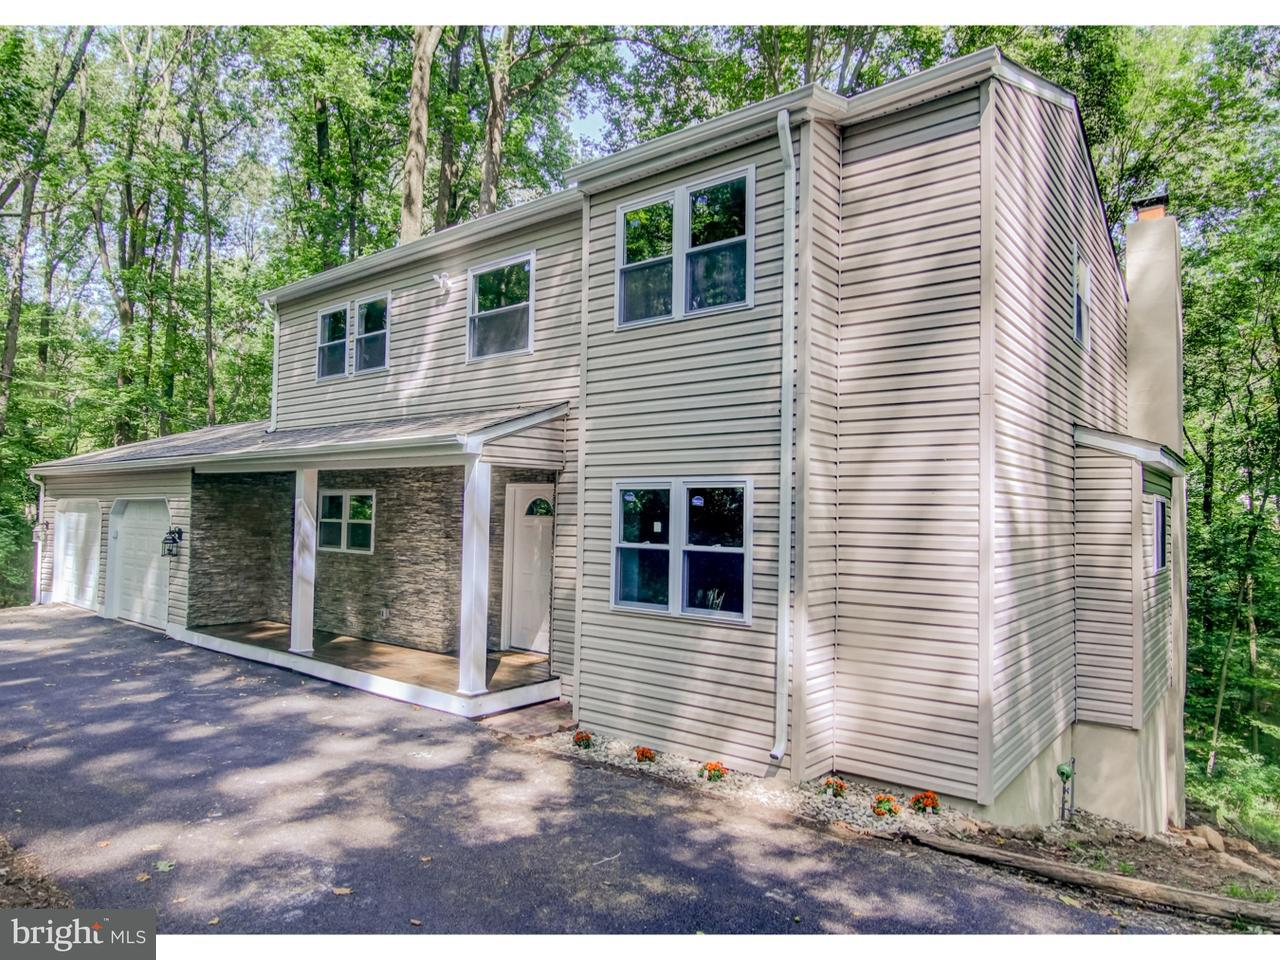 Single Family Home for Rent at 29 GRIST MILL Road Glen Mills, Pennsylvania 19342 United States